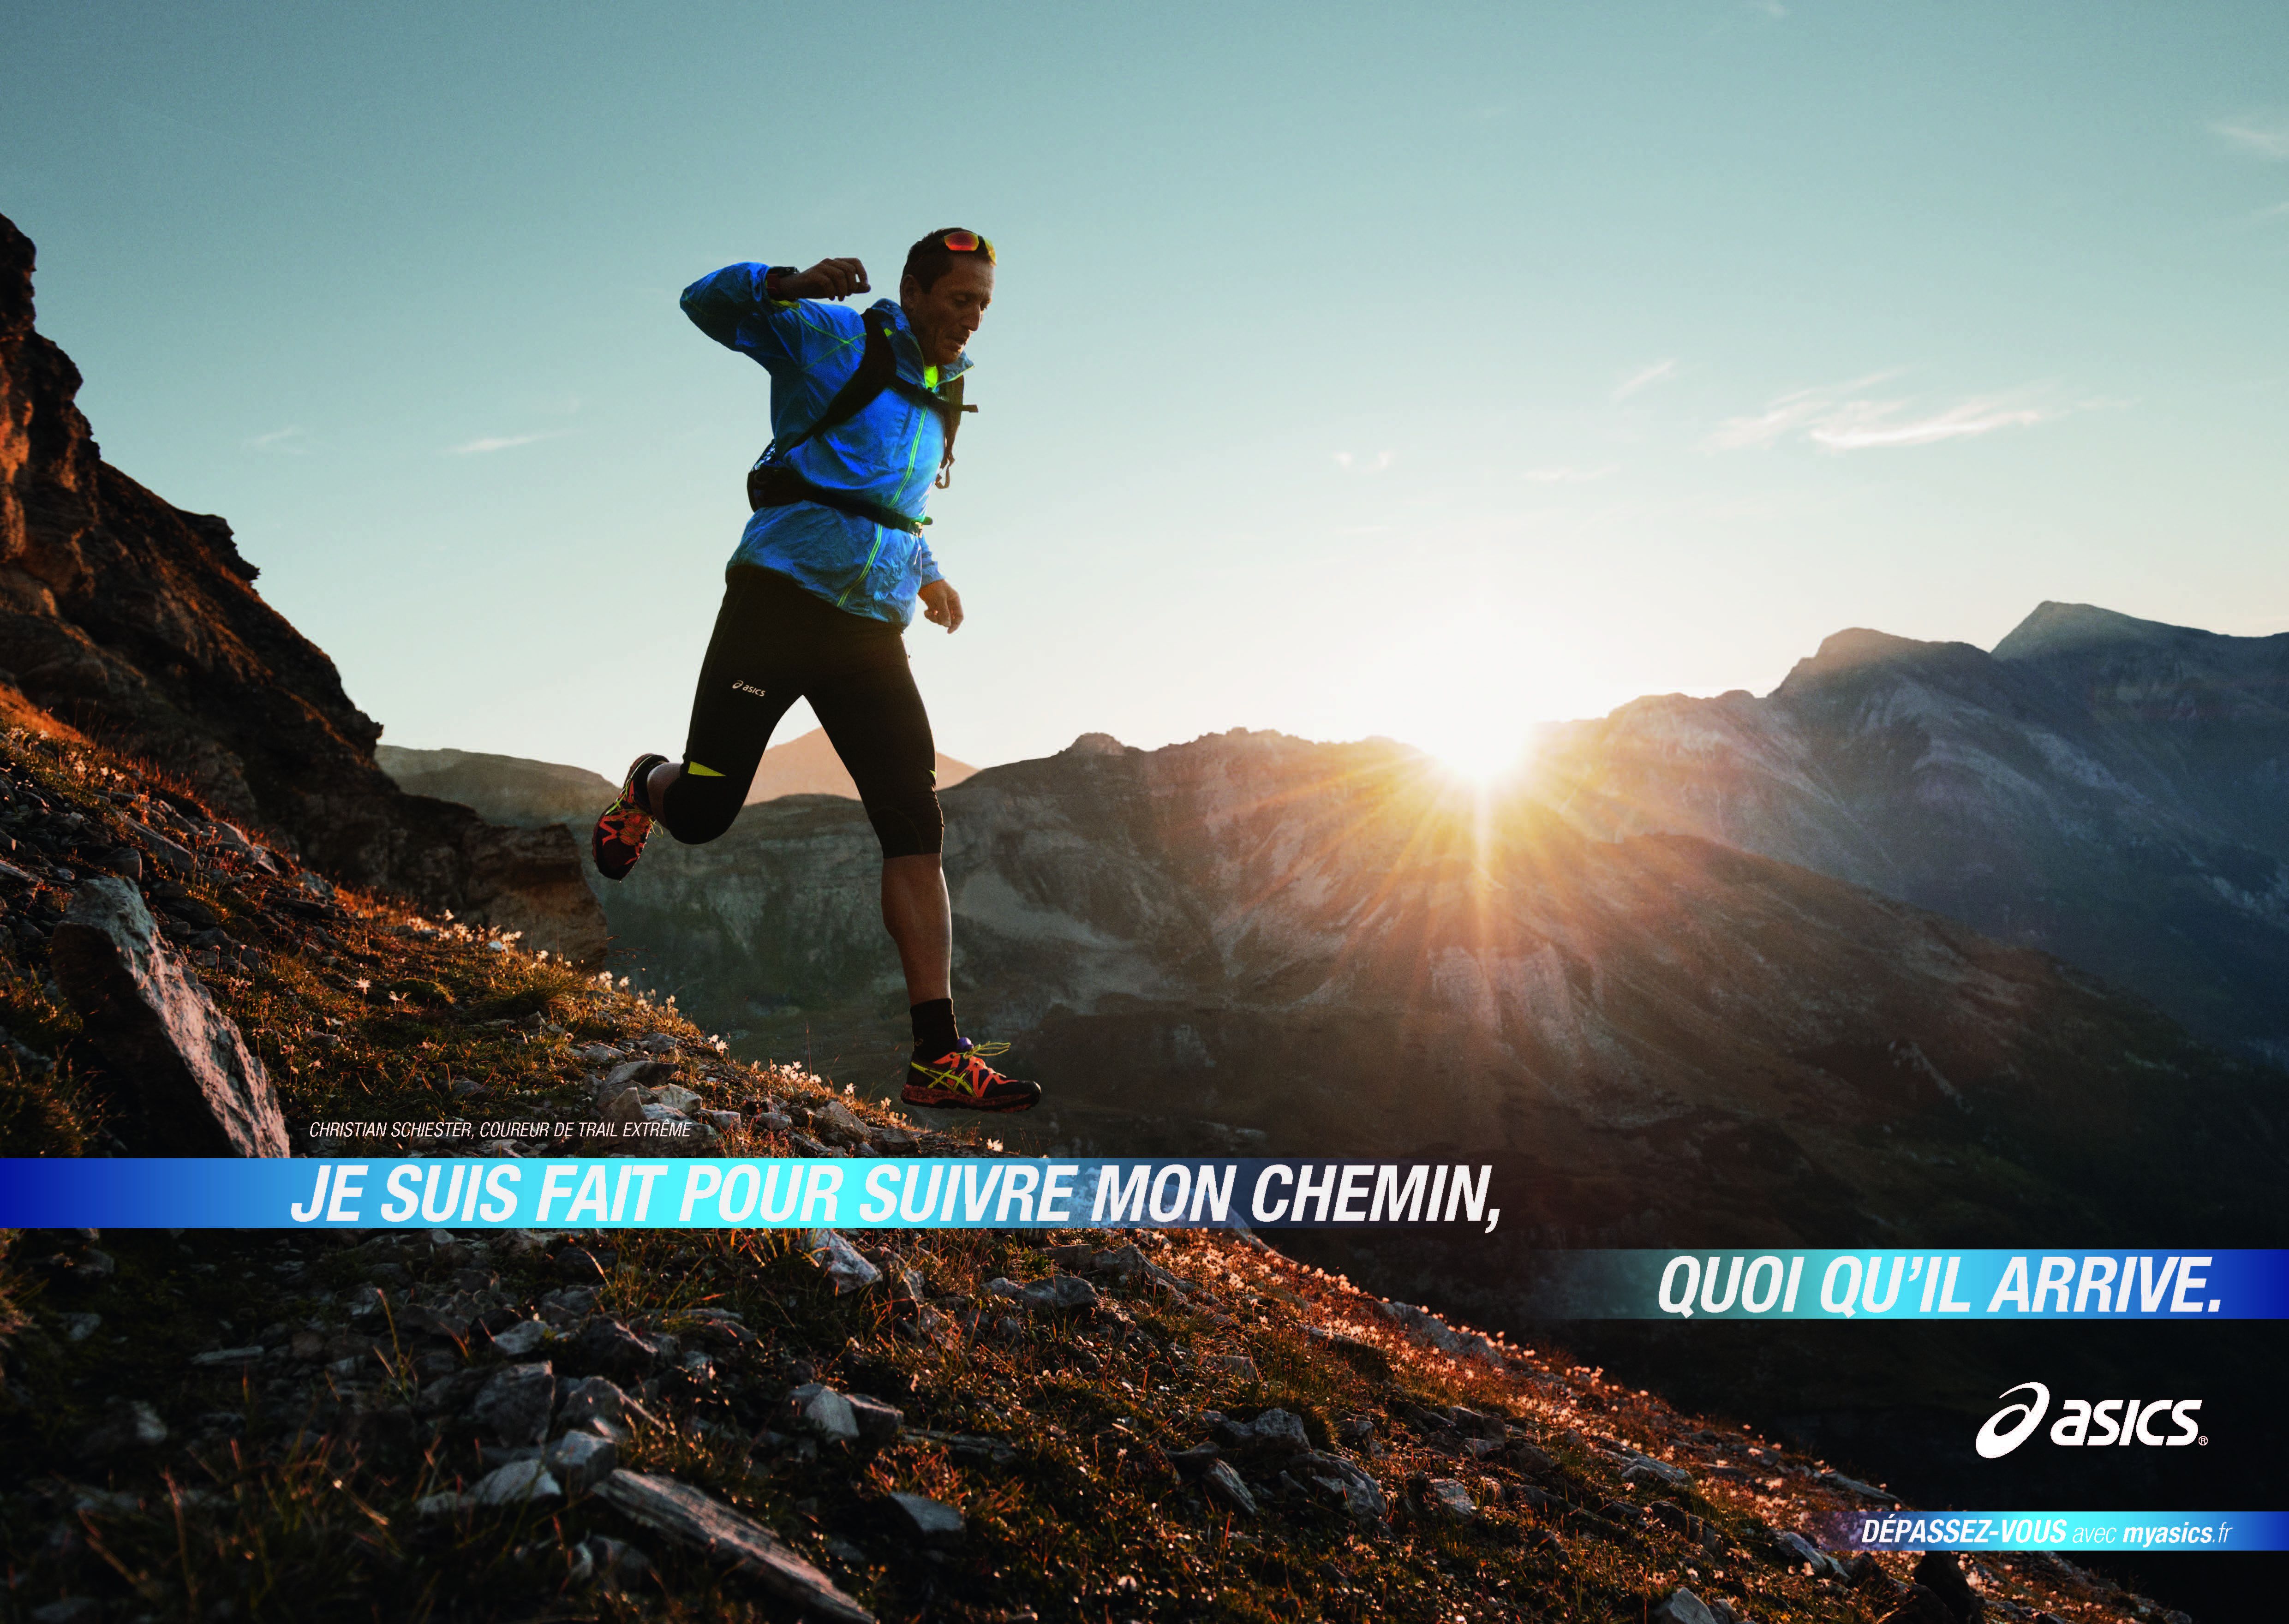 ASICS lance sa nouvelle campagne, Journey of Improvement